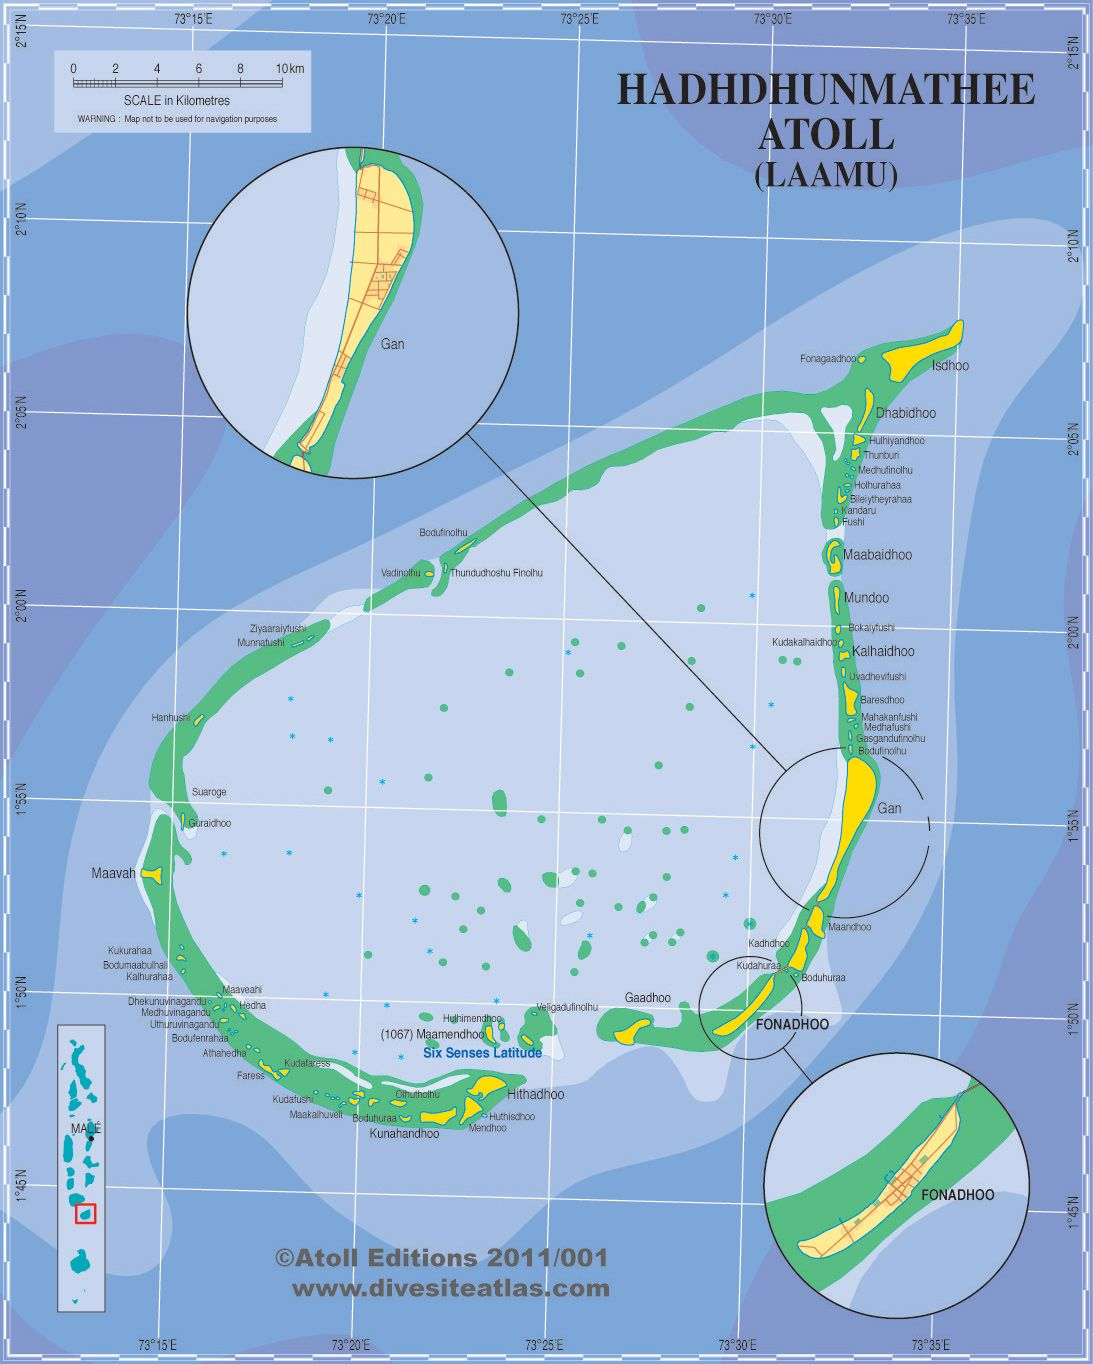 Hadhdhunmathee Atoll Is An Oval Shaped Southern Atoll In The Maldives Also Referred To As Laamu Atoll It Measures 48 Km In Leng Maldives Huvadhoo Atoll Atoll